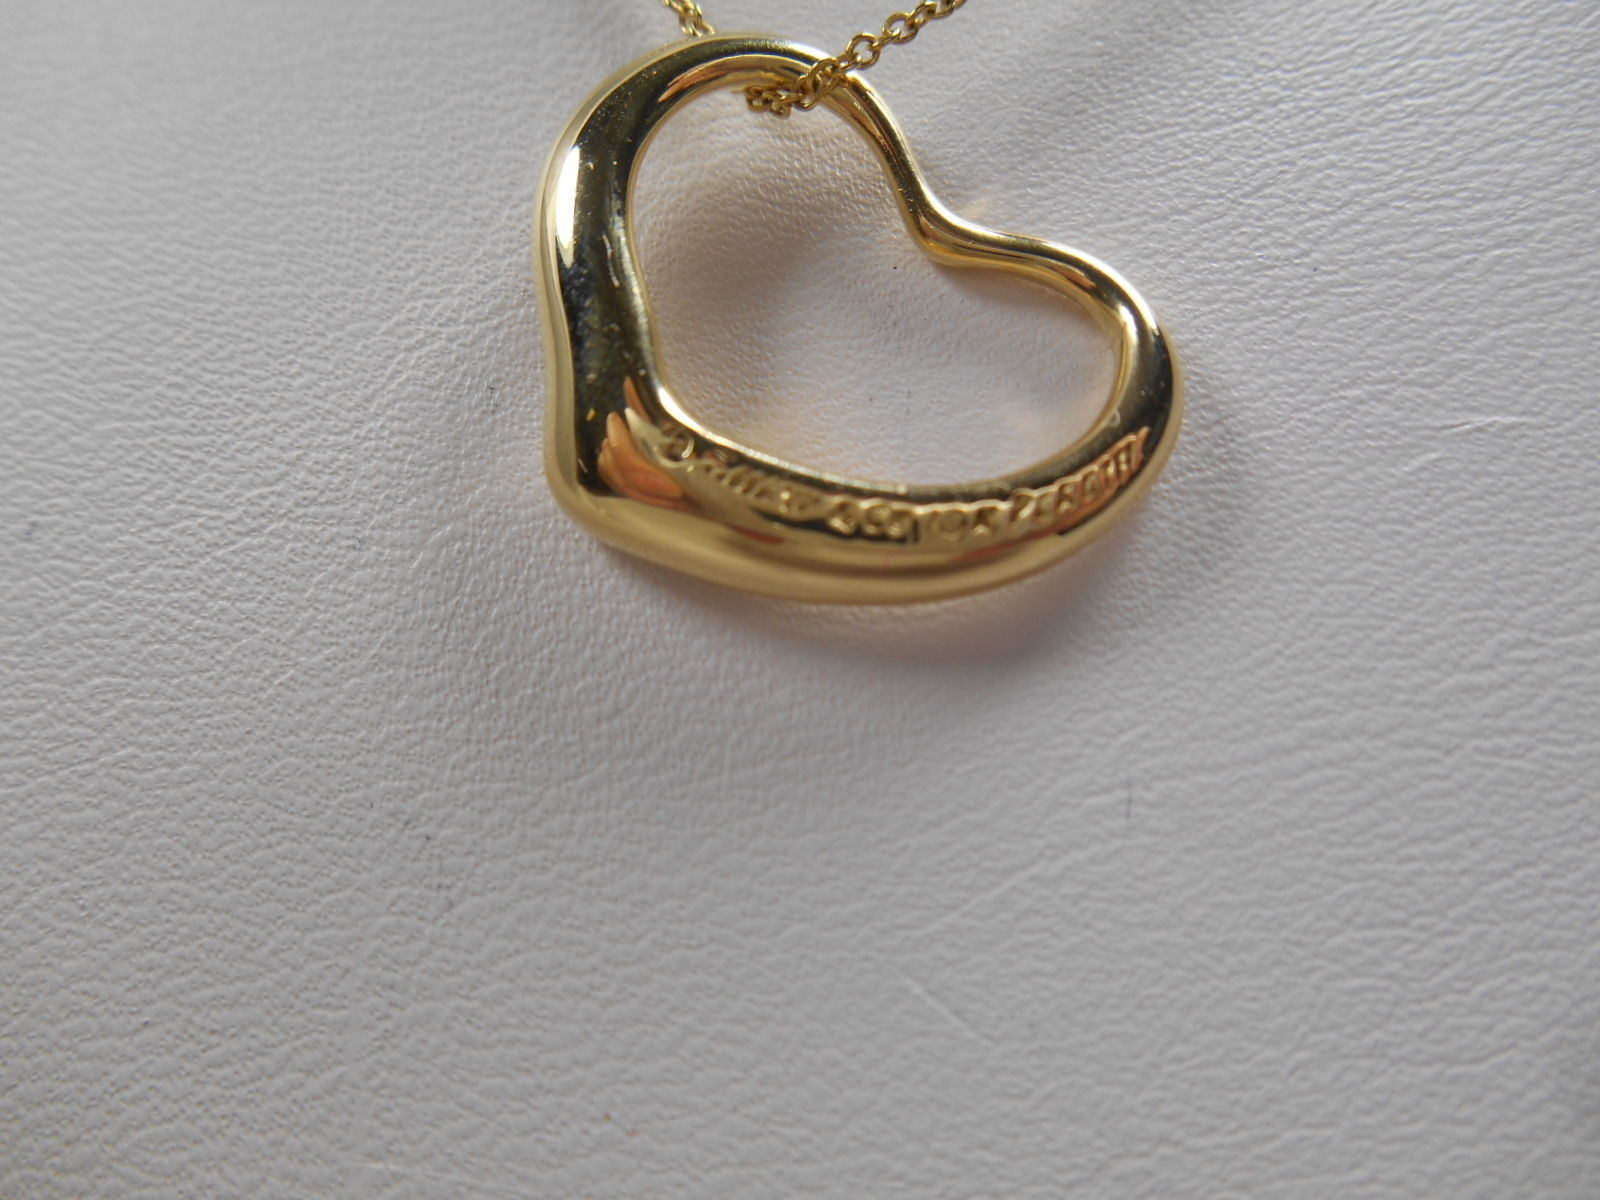 "Primary image for Tiffany & Co Elsa Peretti 18K Gold Medium Open Heart 16"" Necklace ($2200 Retail)"